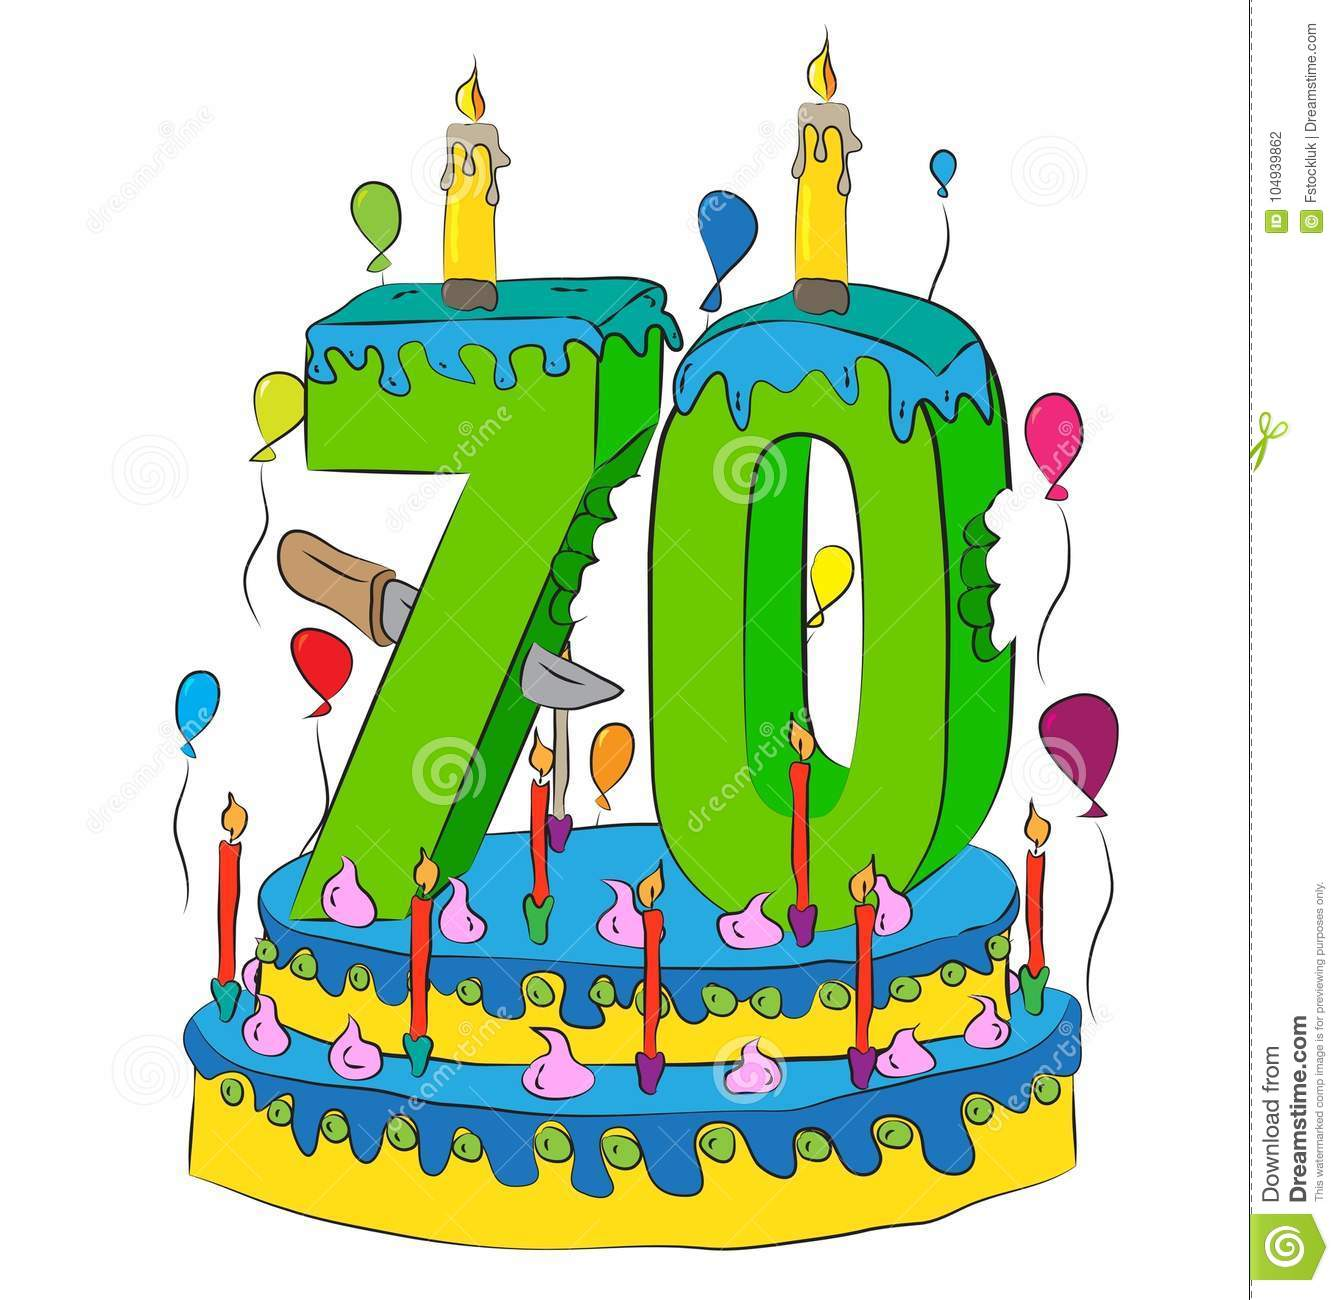 70 Birthday Cake With Number Seventy Candle Celebrating Seventieth Year Of Life Colorful Balloons